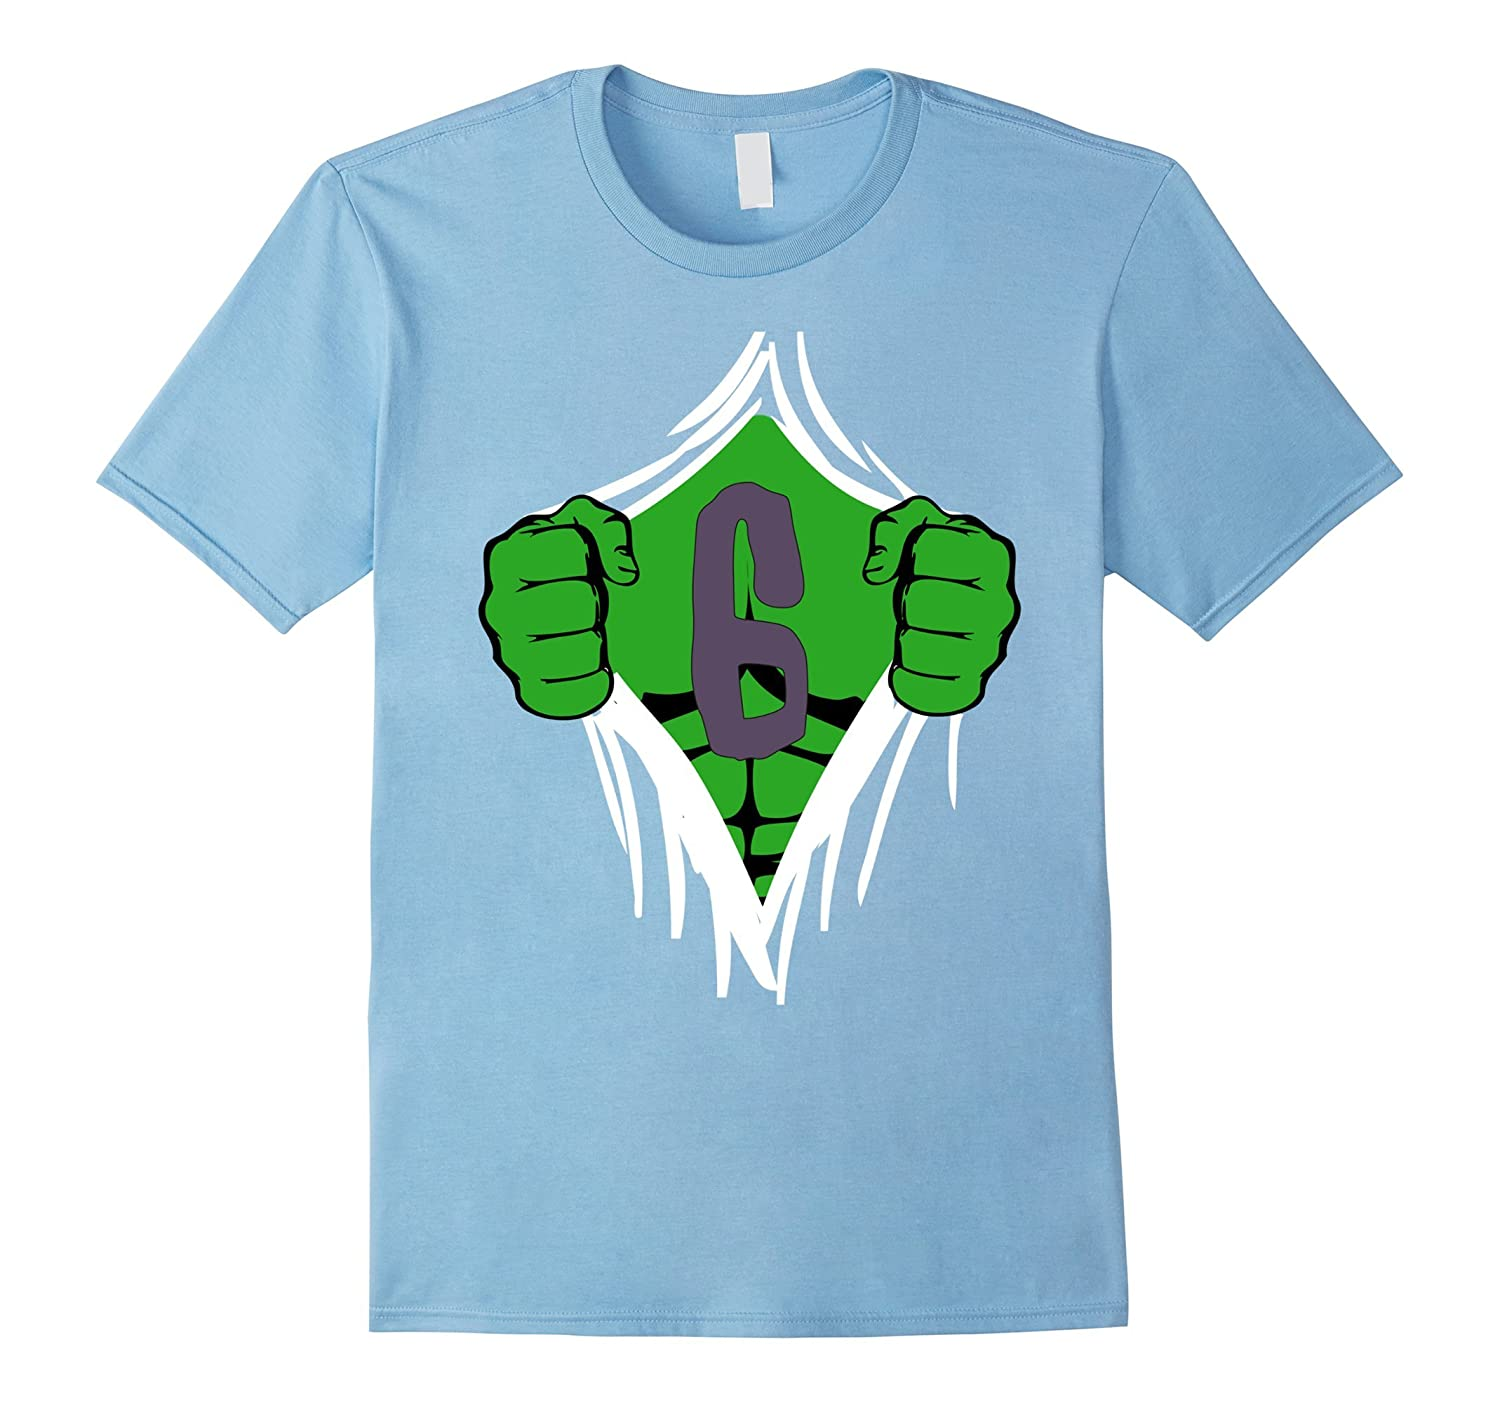 Green Man Chest Superhero Birthday Shirt For 6 Year Old Boys RT